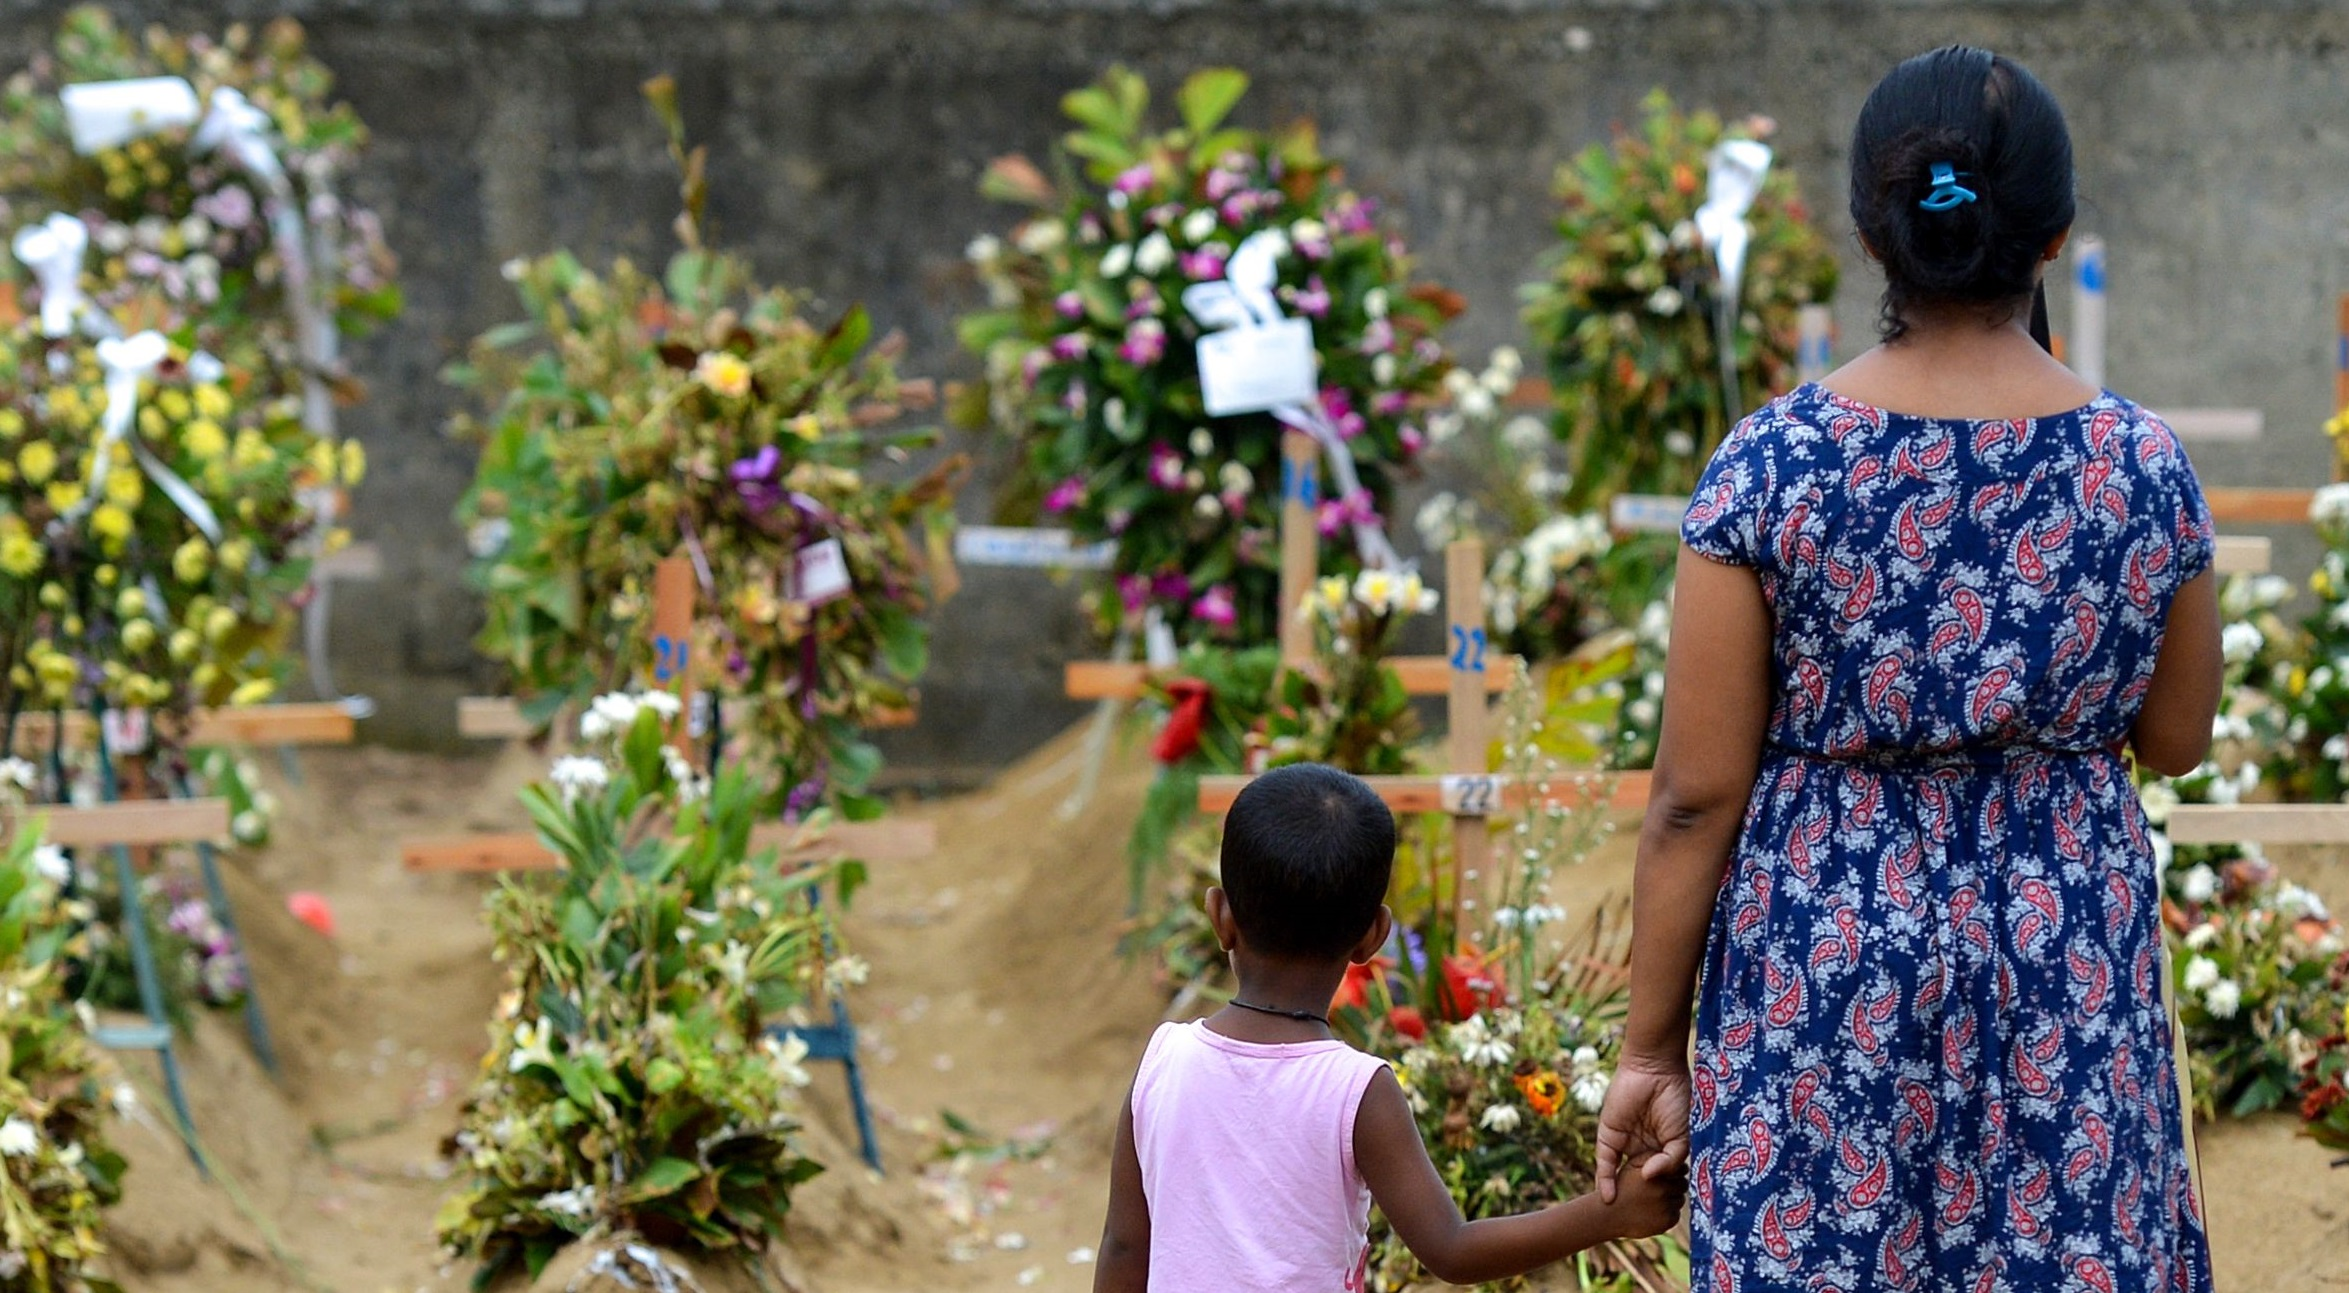 Relatives pay their respects in front of the graves of the victims of recent bomb blasts at St. Sebastian's Church in Negombo on April 28, 2019, a week after a series of bomb blast